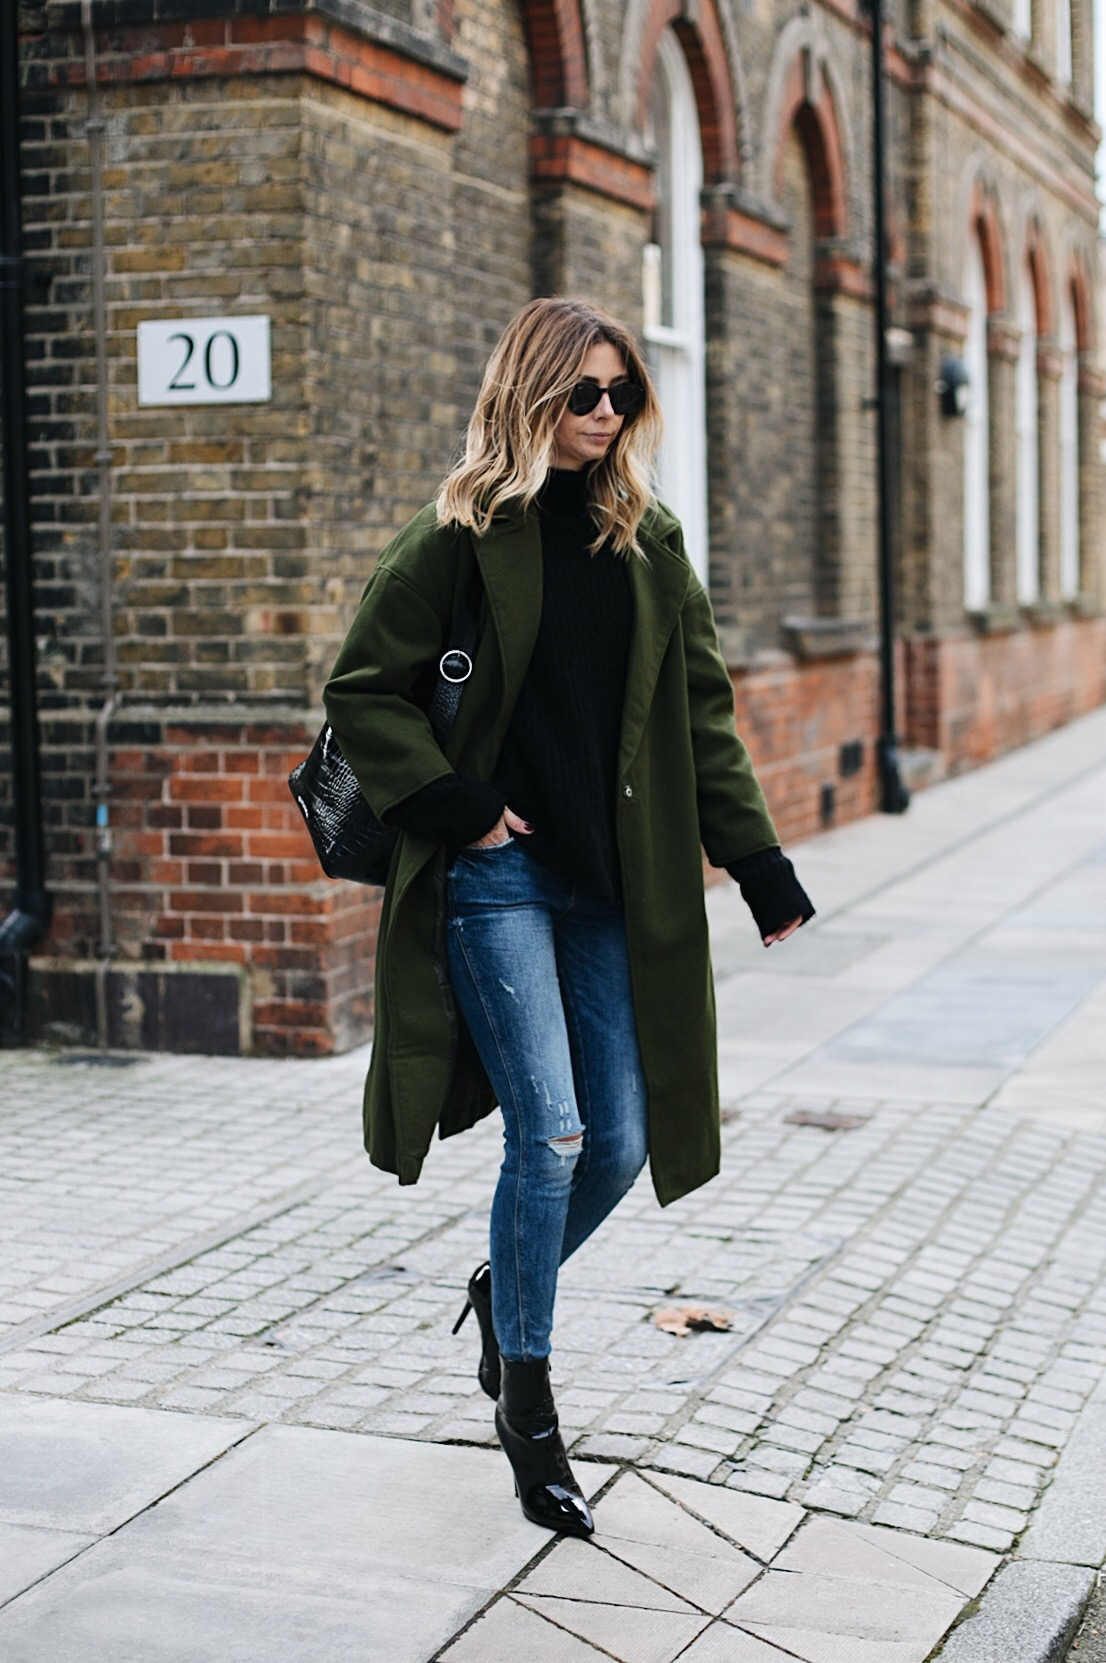 khaki coat, black sweater, ripped skinny jeans, black vinyl patent heeled ankle boots, large black croc bag, chic winter outfit